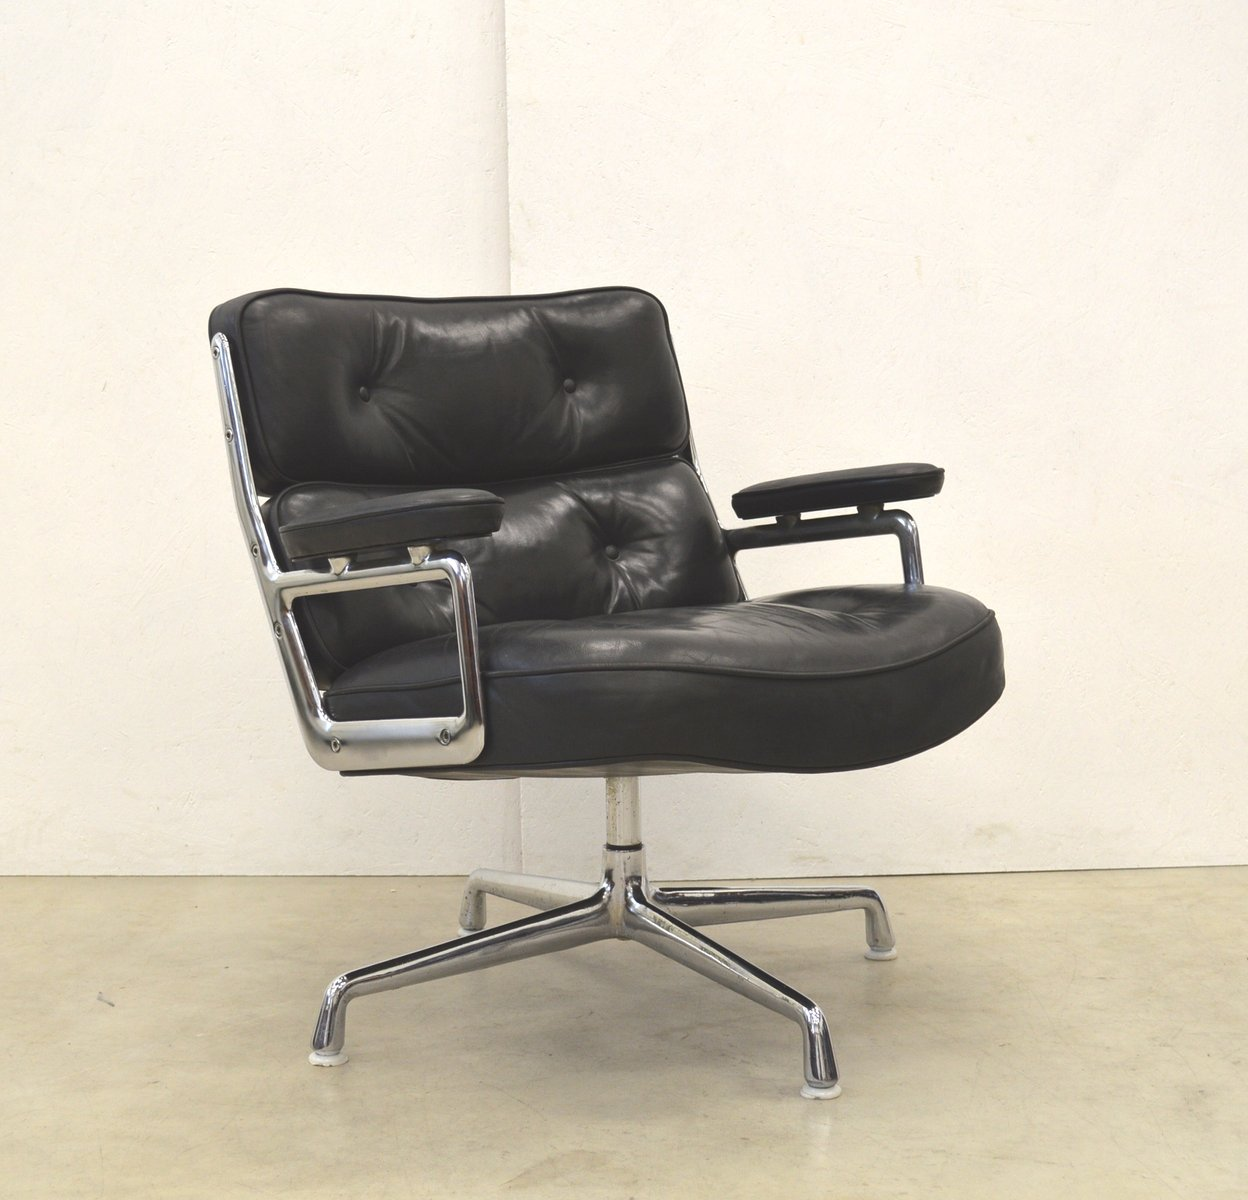 american es105 lobby chair by charles ray eames for herman miller 1970s for sale at pamono. Black Bedroom Furniture Sets. Home Design Ideas